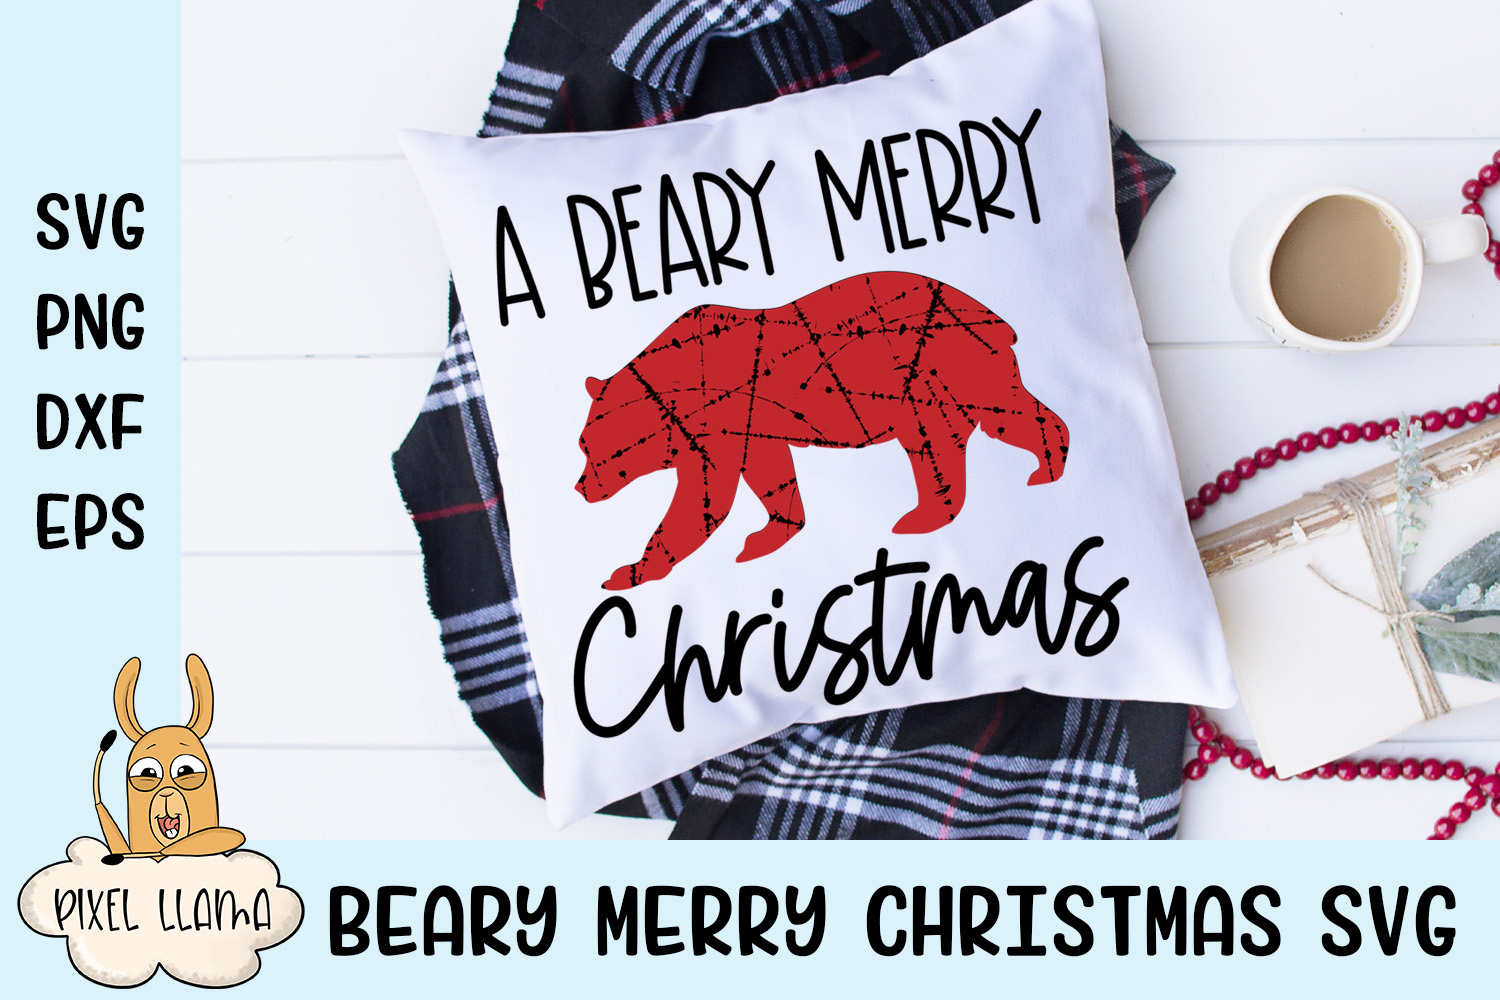 A Beary Merry Christmas Pillow Grunge SVG example image 1